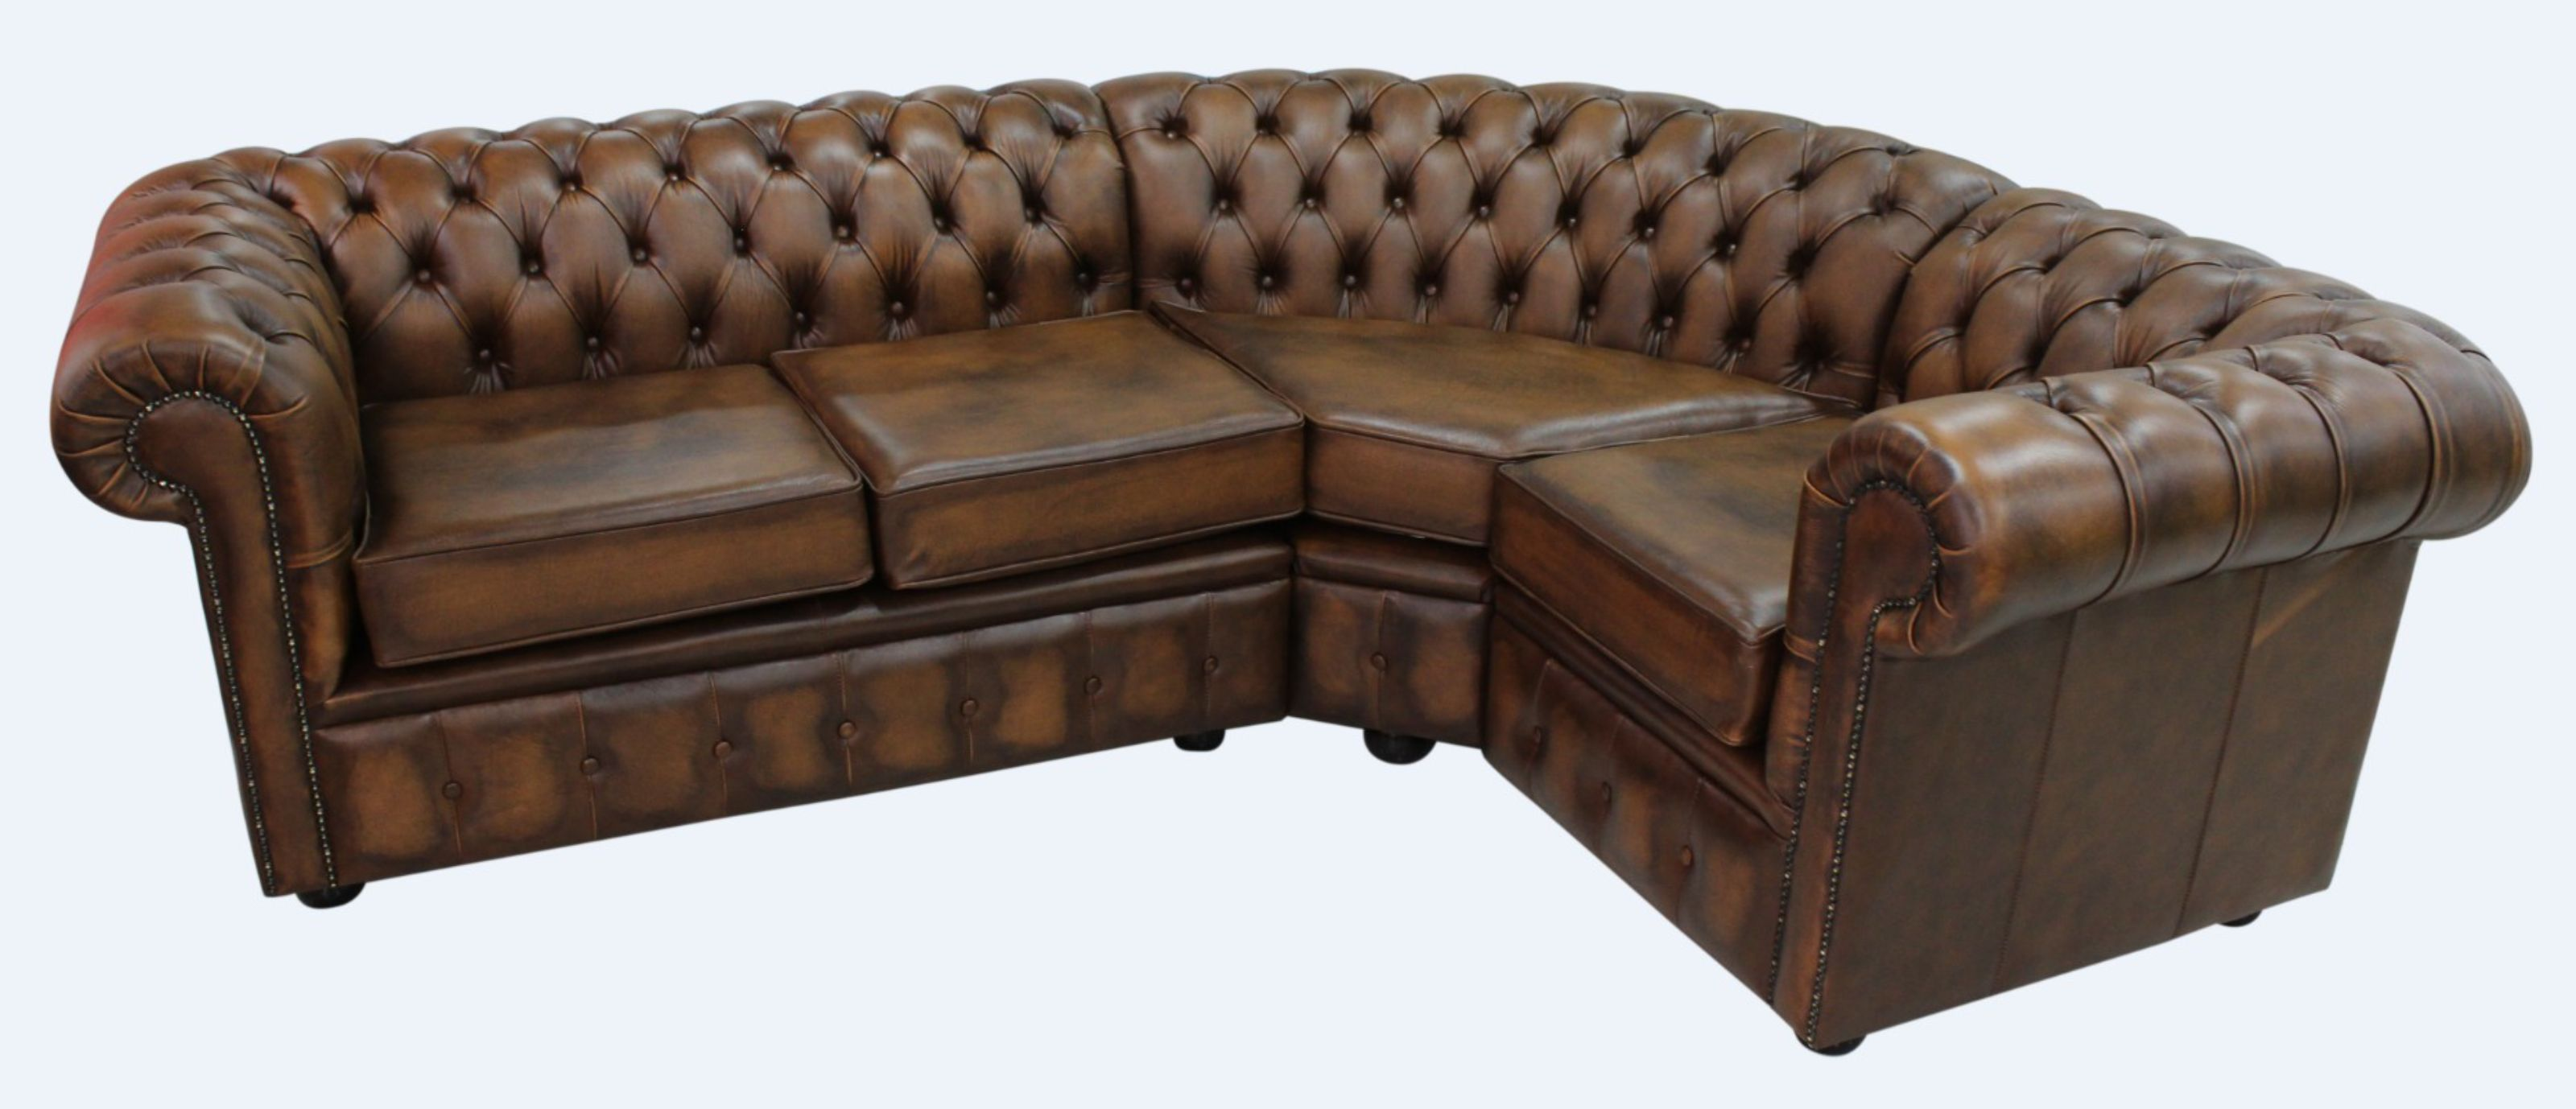 chesterfield sectional sofa suppliers pipe set corner 2 seater 1 antique tan leather